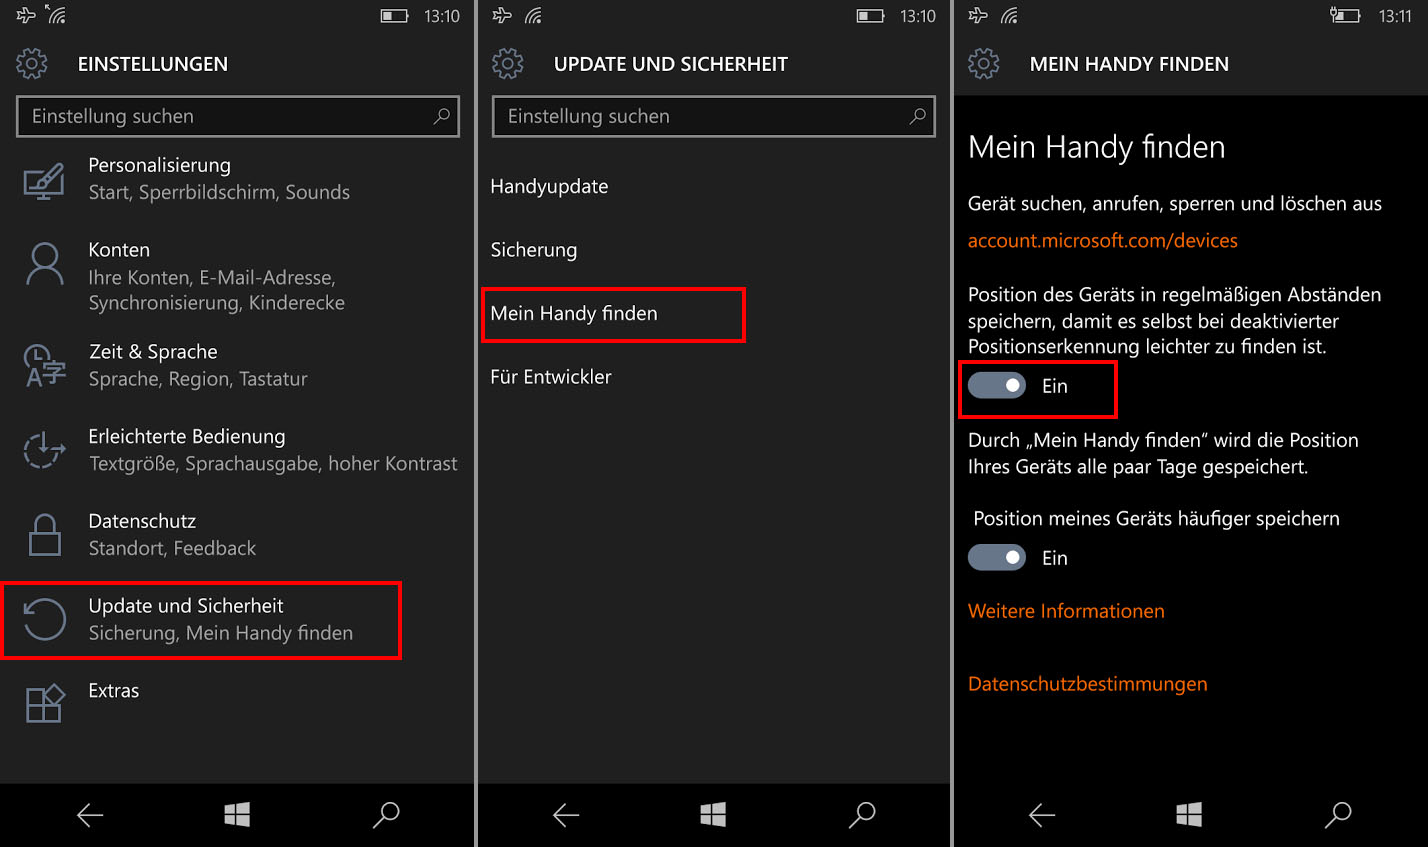 Handy Ortung mit dem Windows Phone – So geht's